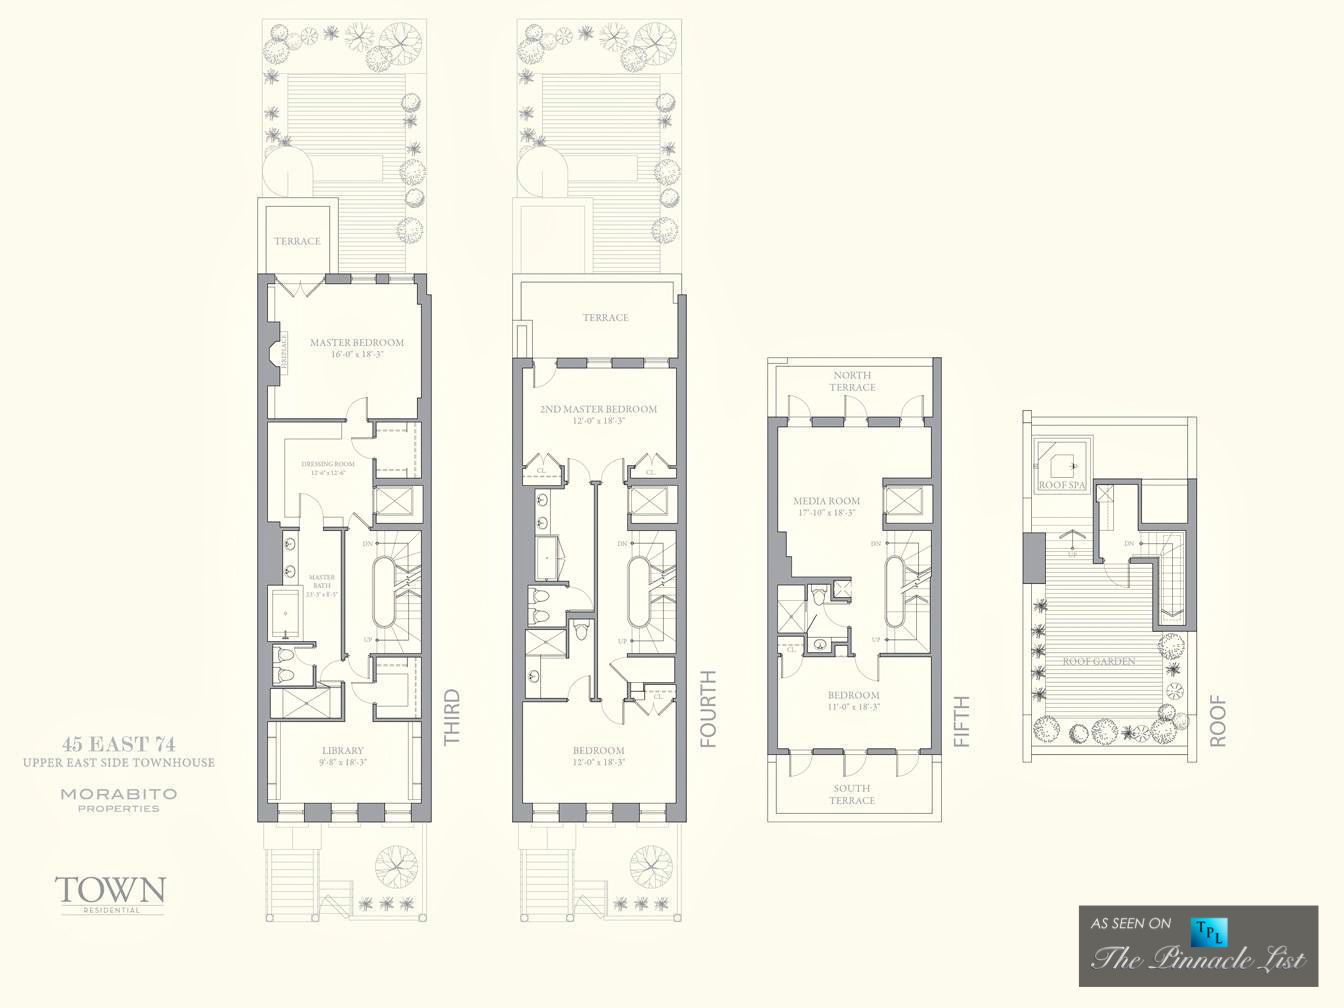 floor plan 26 million upper east side townhouse 45 east 74th floor plan 26 million upper east side townhouse 45 east 74th st new